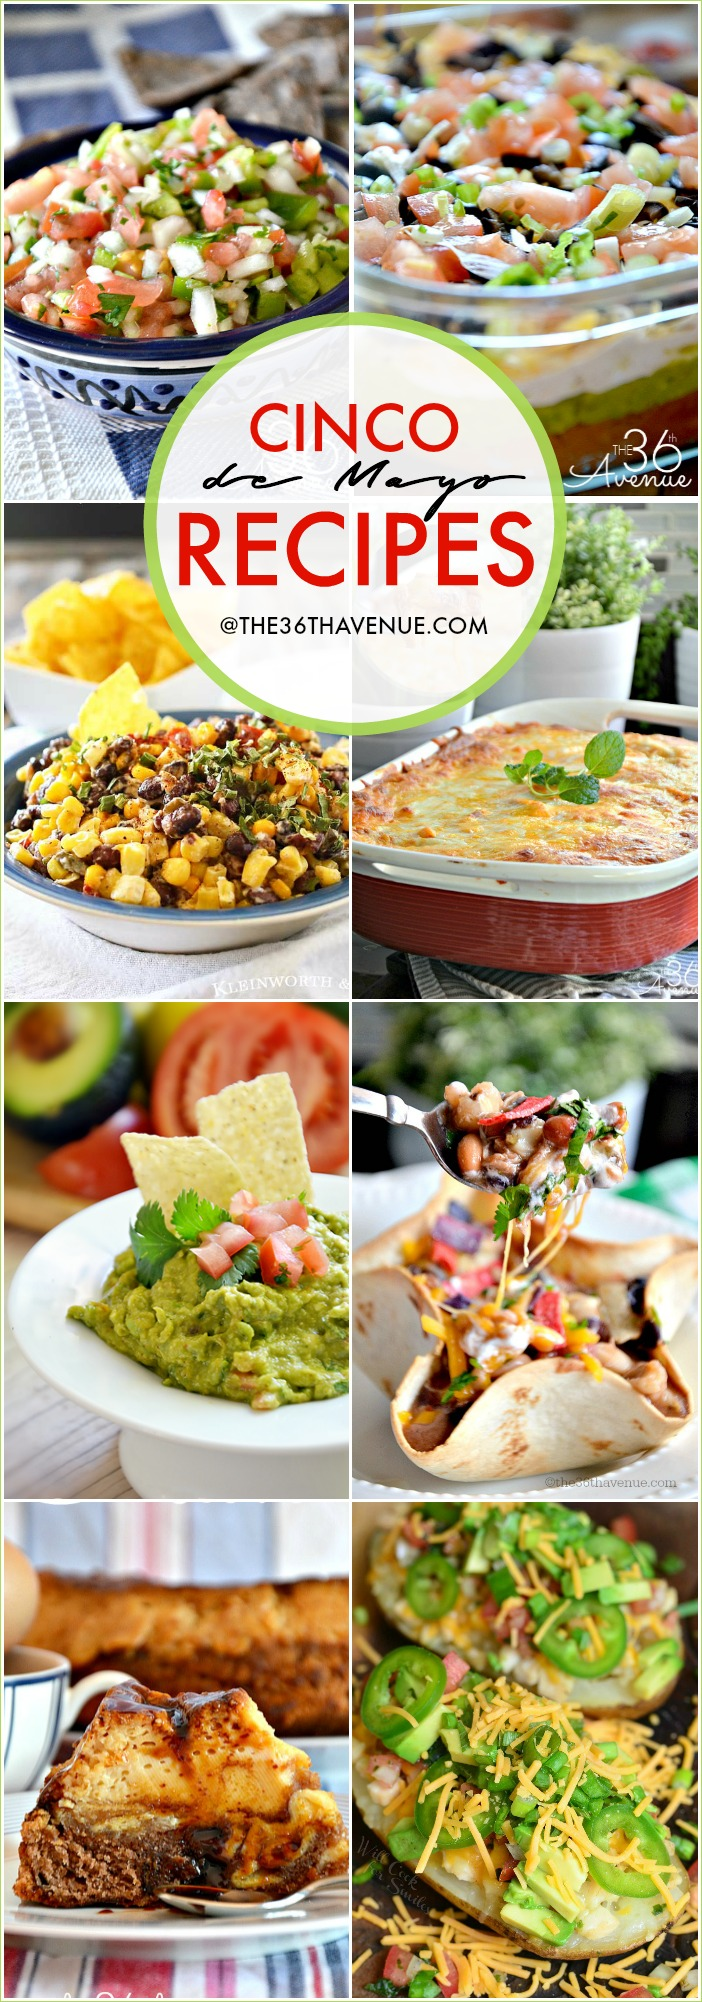 Cinco de Mayo Recipes should be colorful, tasty, and fun party food. These Mexican Food Recipes are easy to make and delicious.